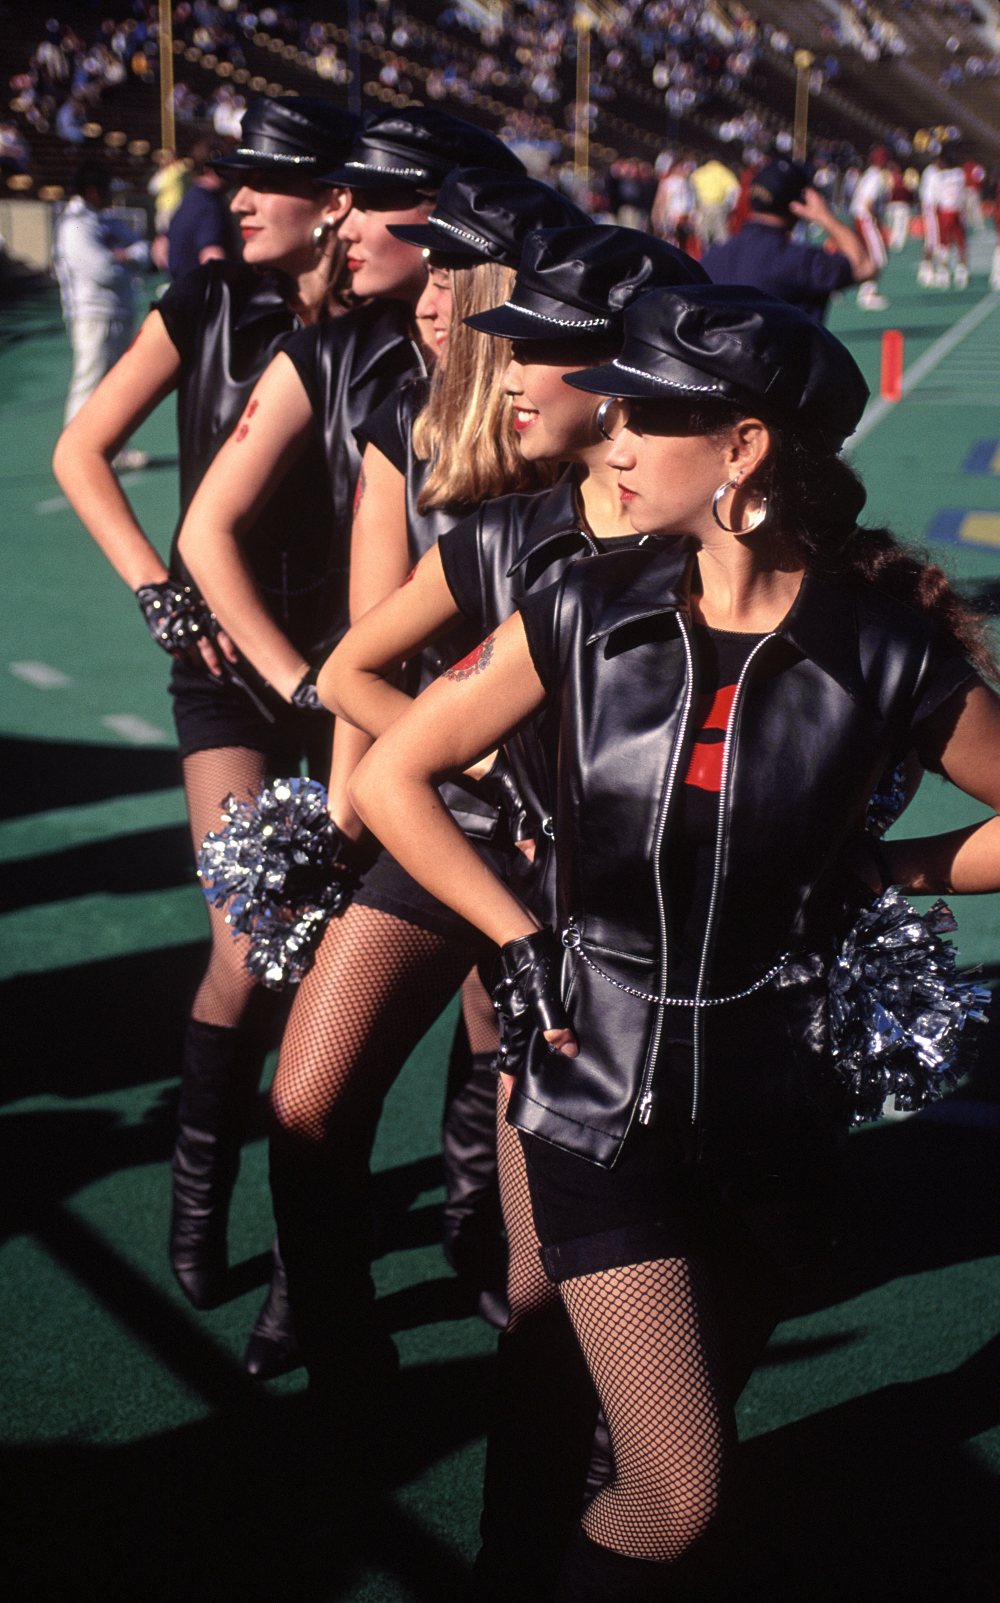 Dollies dressed in black leather